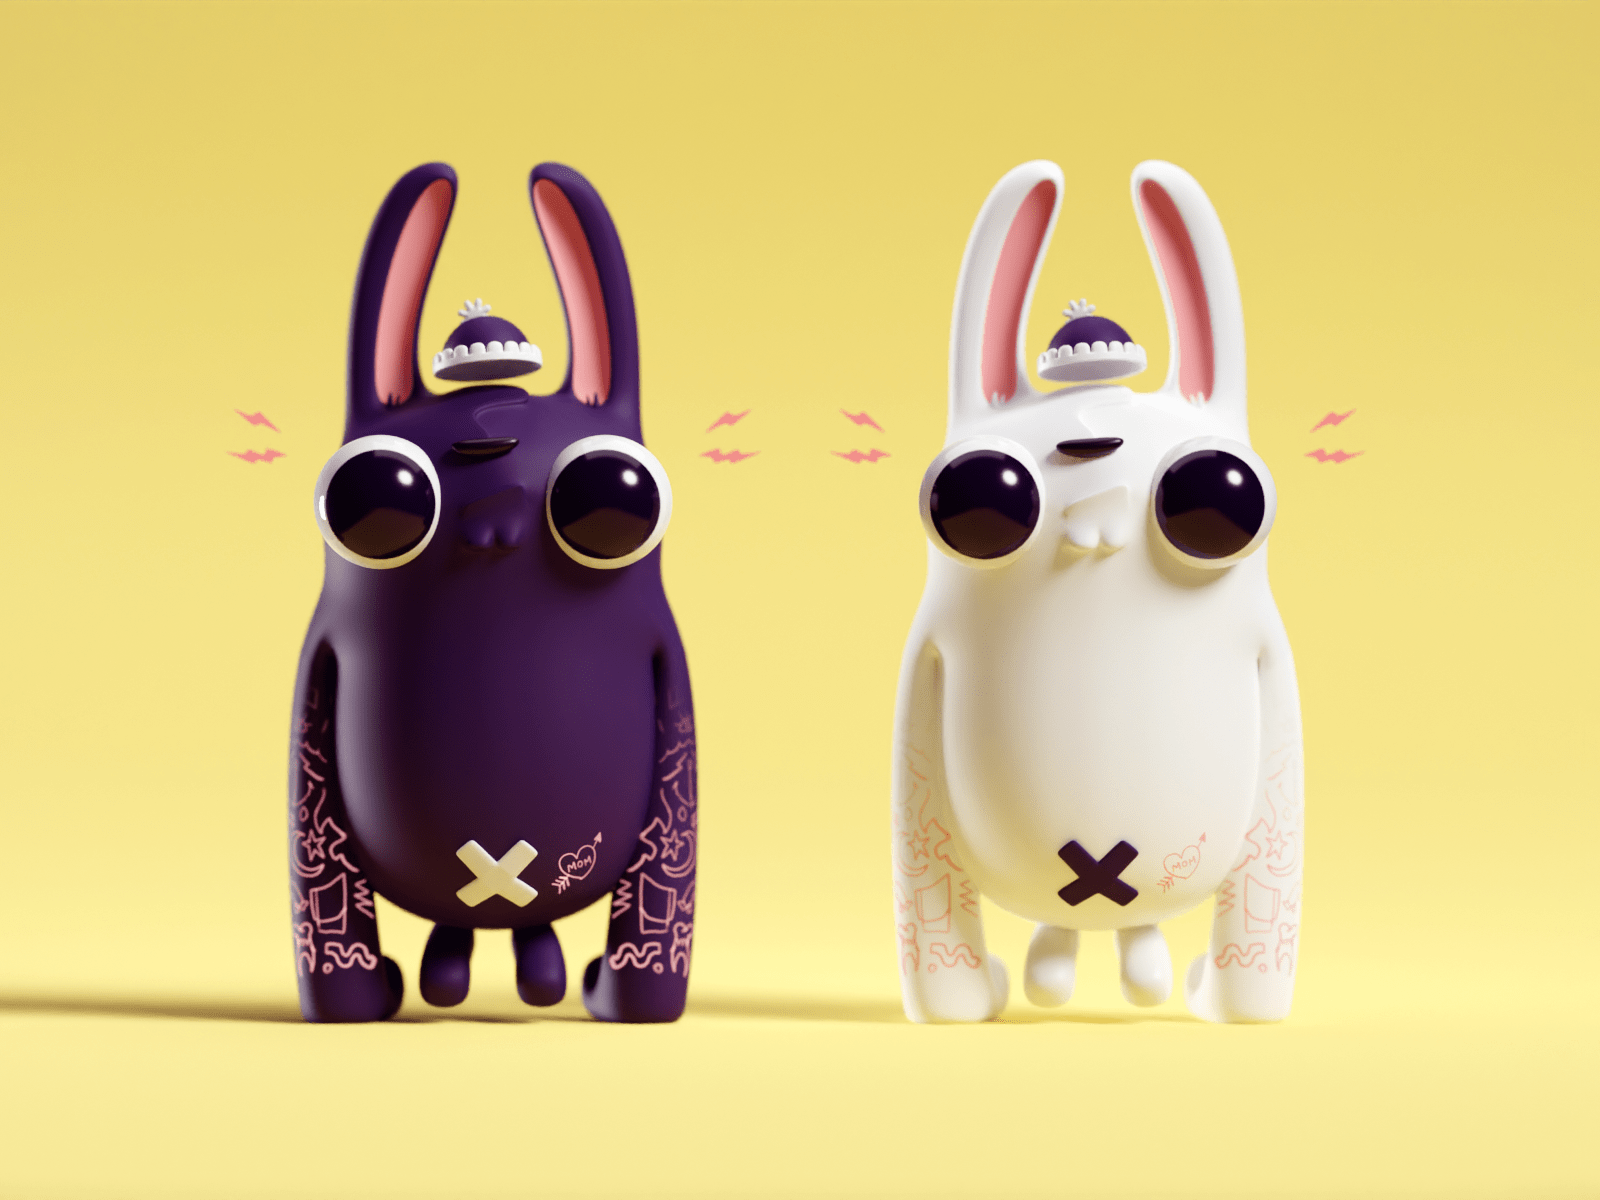 Black and White Gorilla Bunnies by Mohamed Chahin